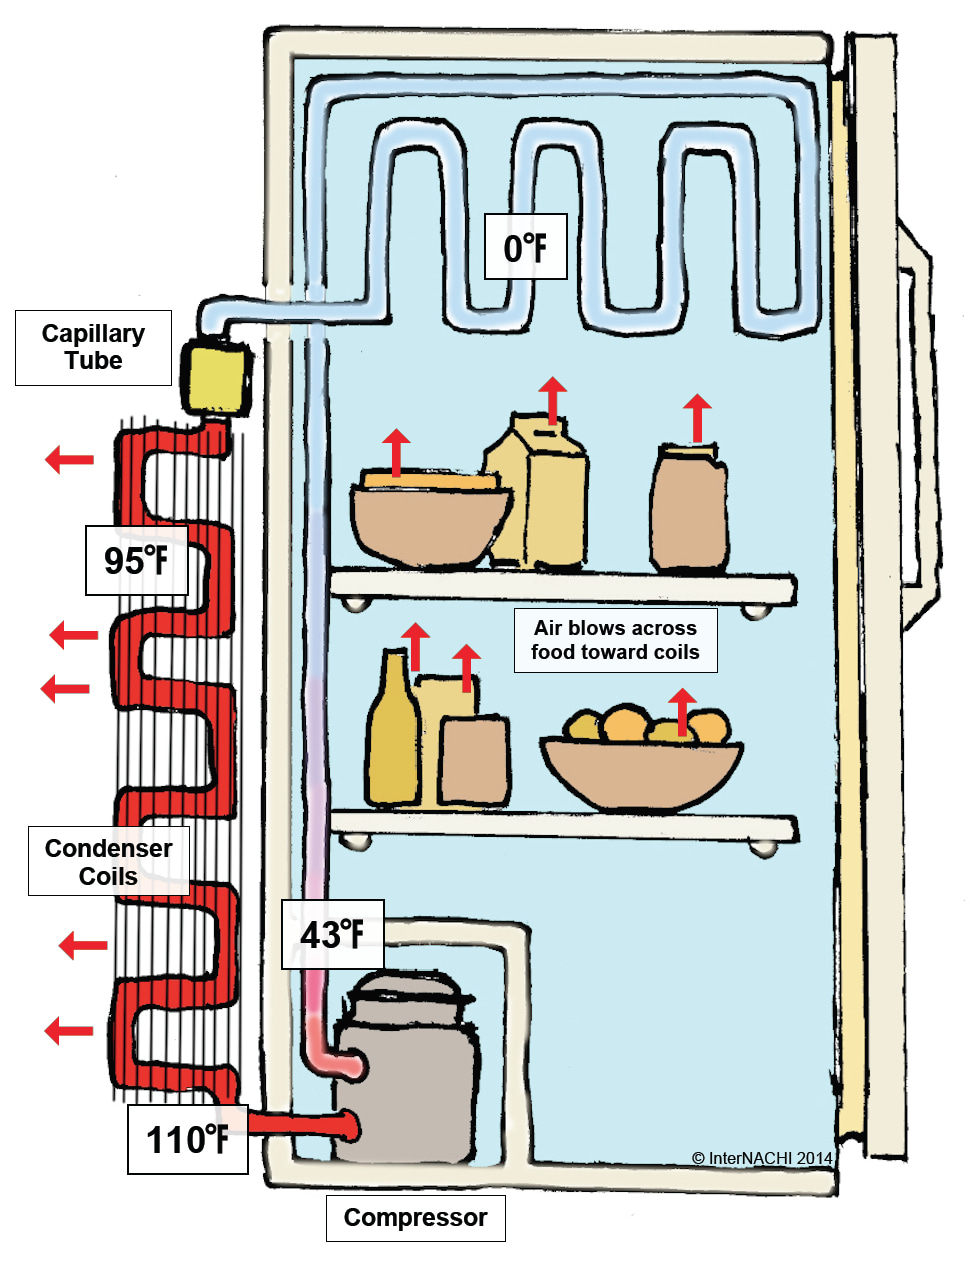 This illustration is of a refrigerator, its major components, and operation cycle.